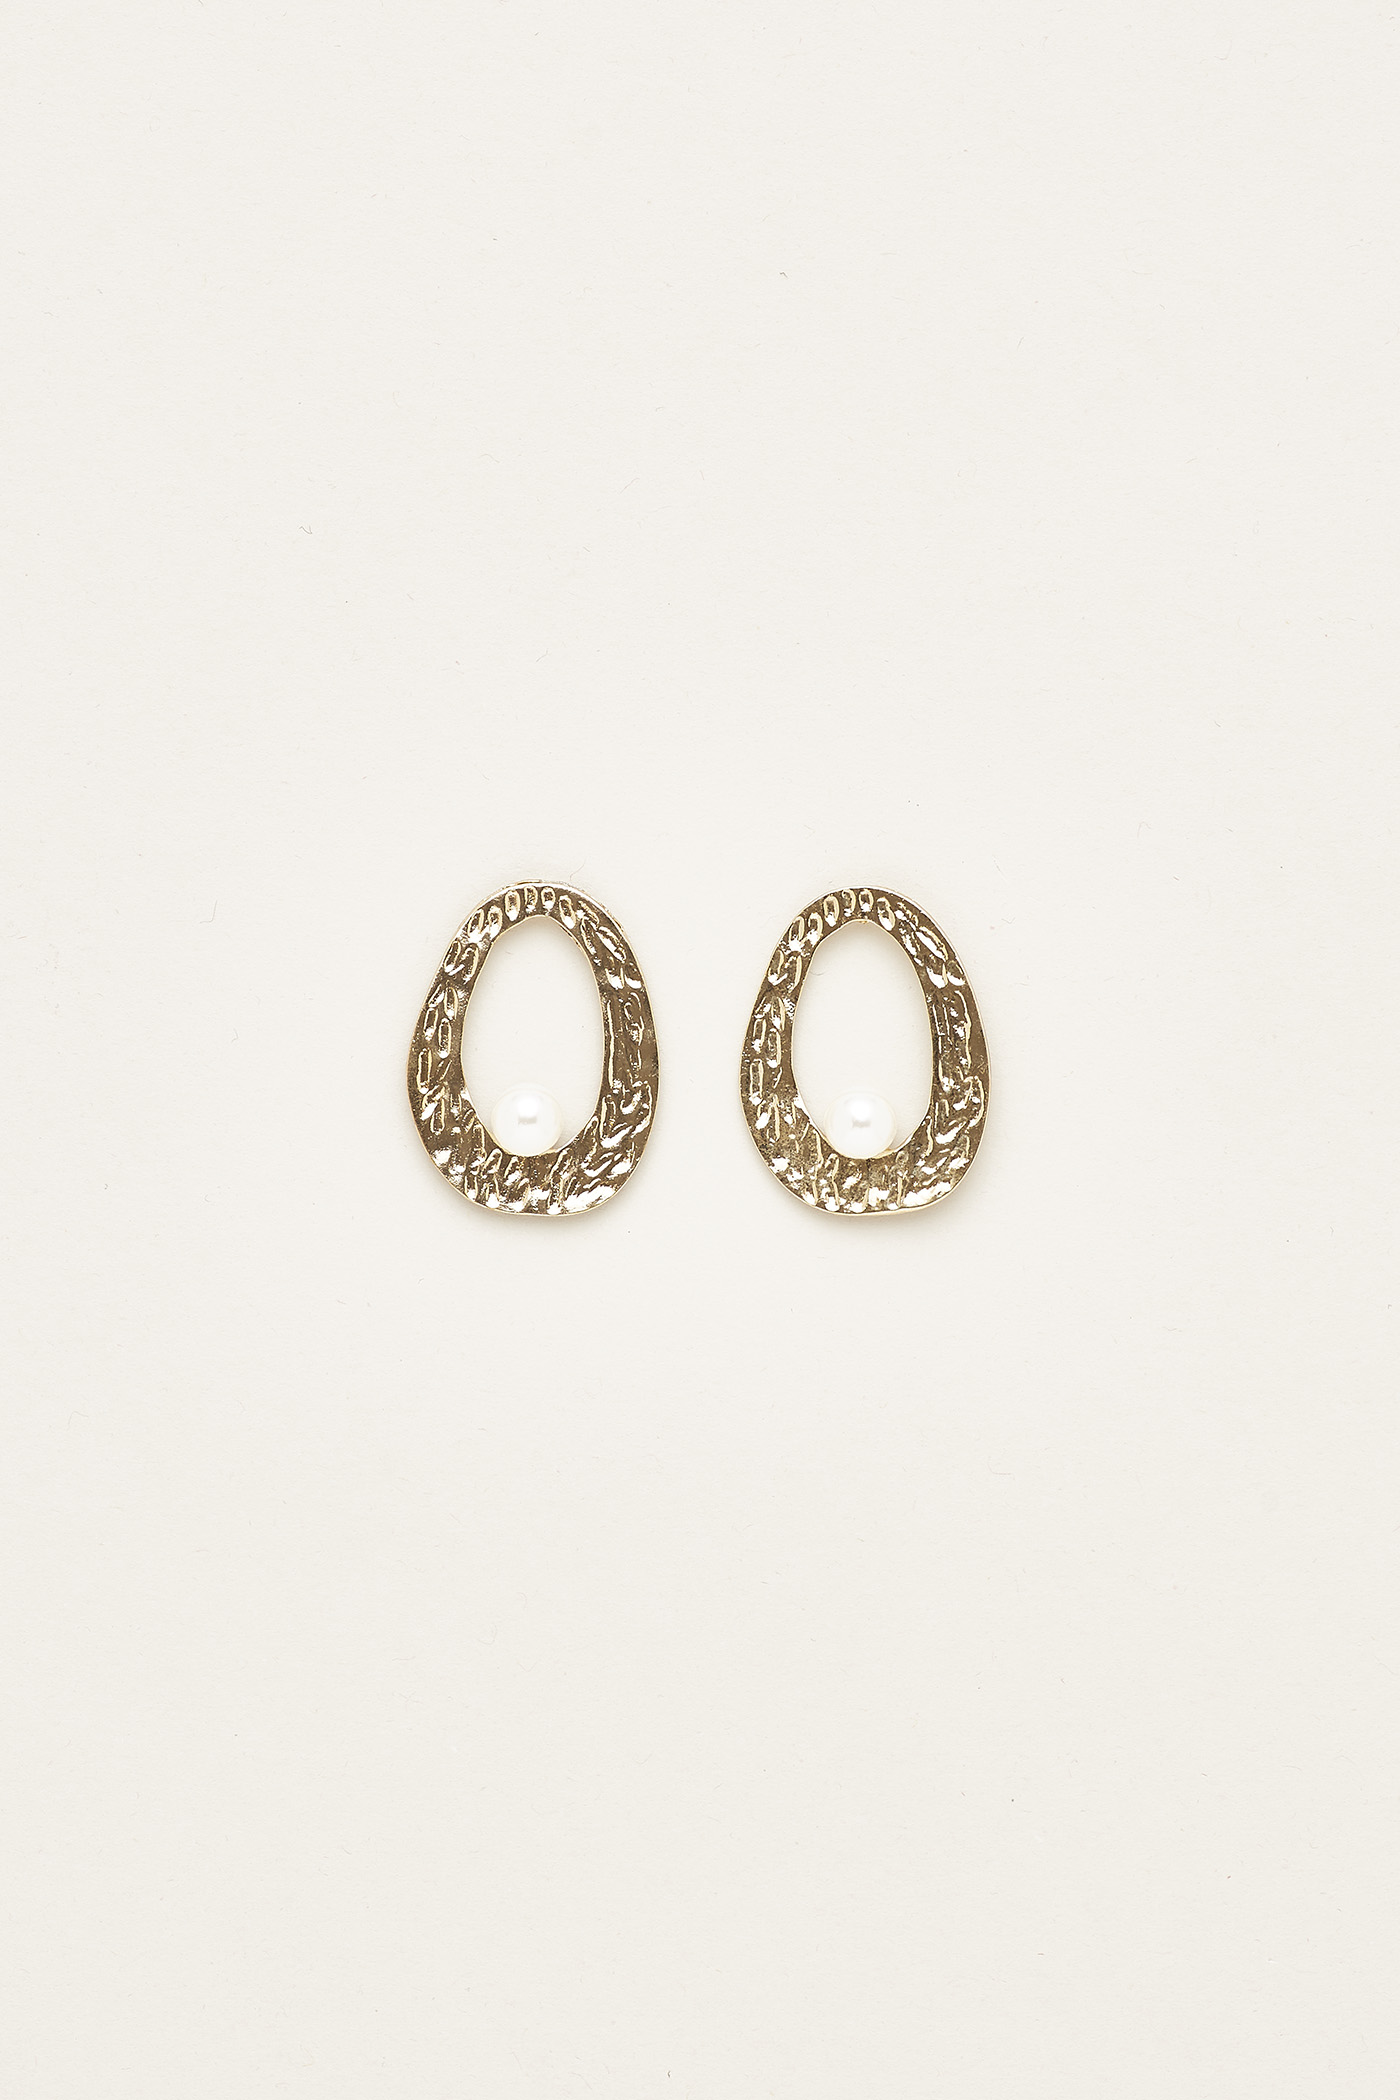 Yuliana Pearl Earrings